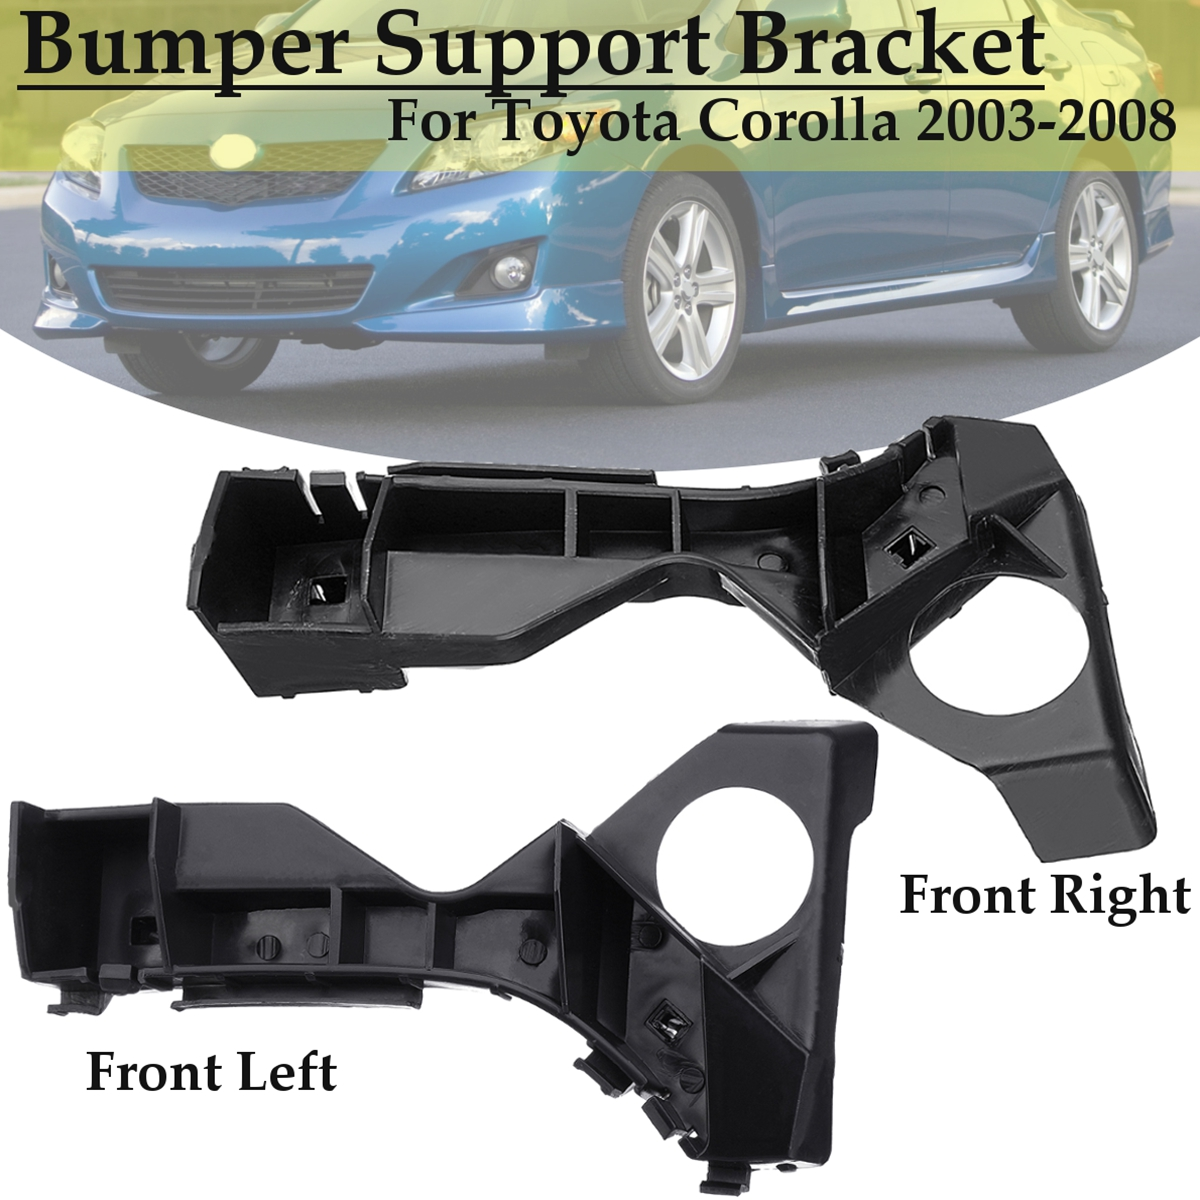 Front Right Left Bumper Spacer Bracket Black For Toyota Corolla 2003 2004 2005 2006 2007 2008 5211602061 TO1066142